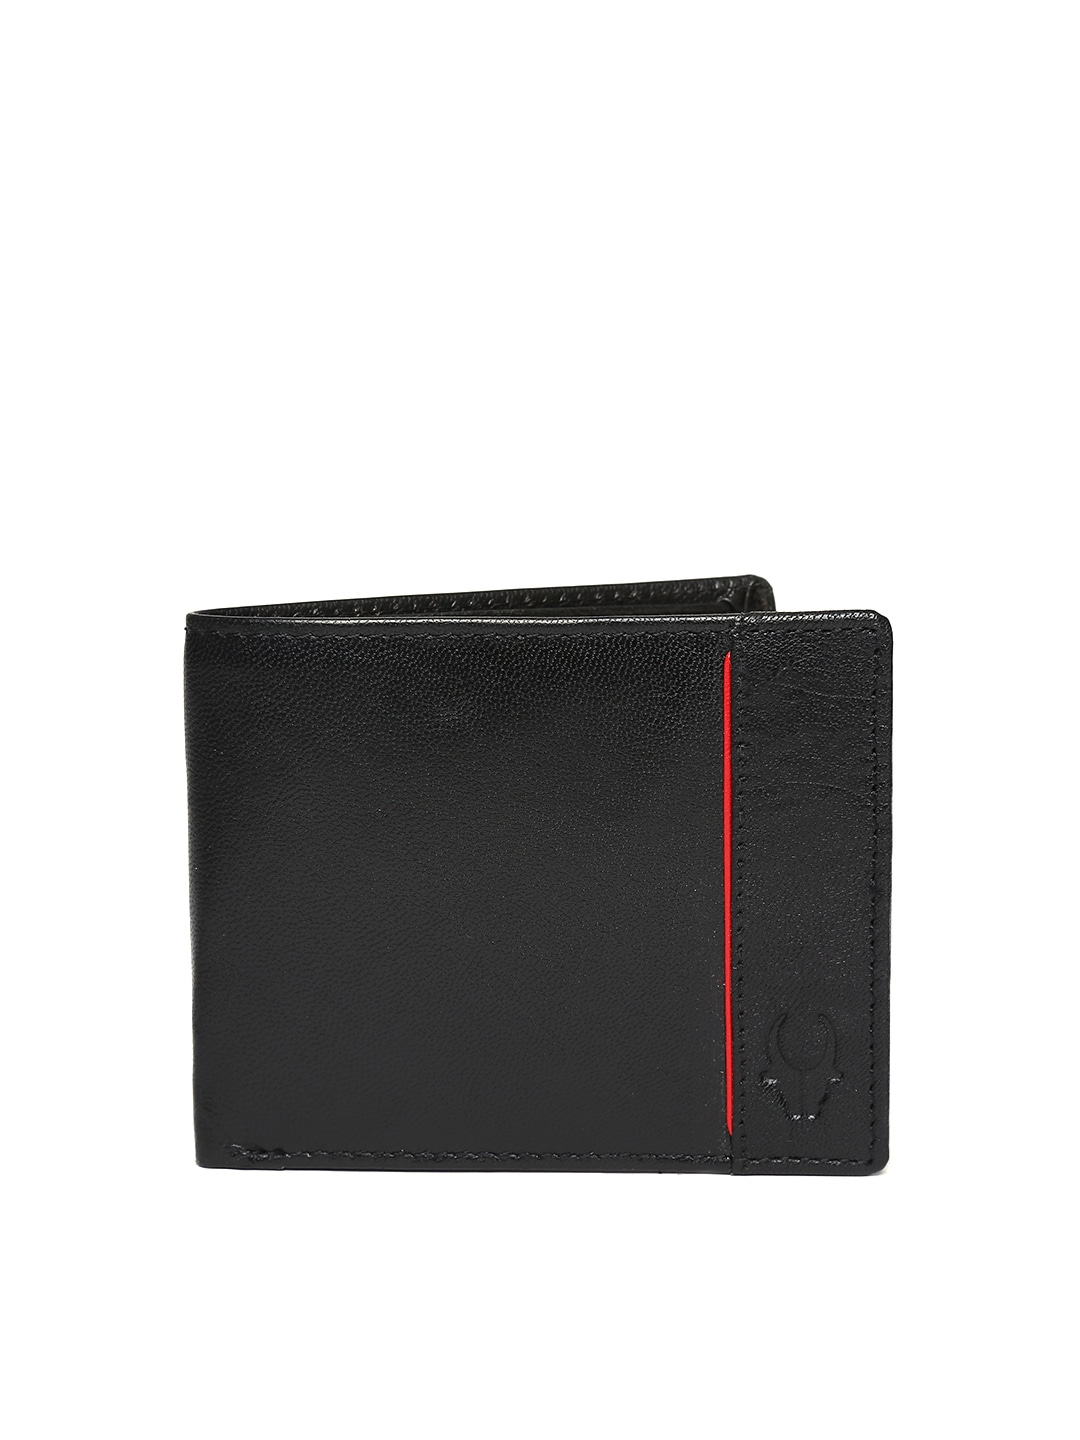 WildHorn Men Black Leather Wallet